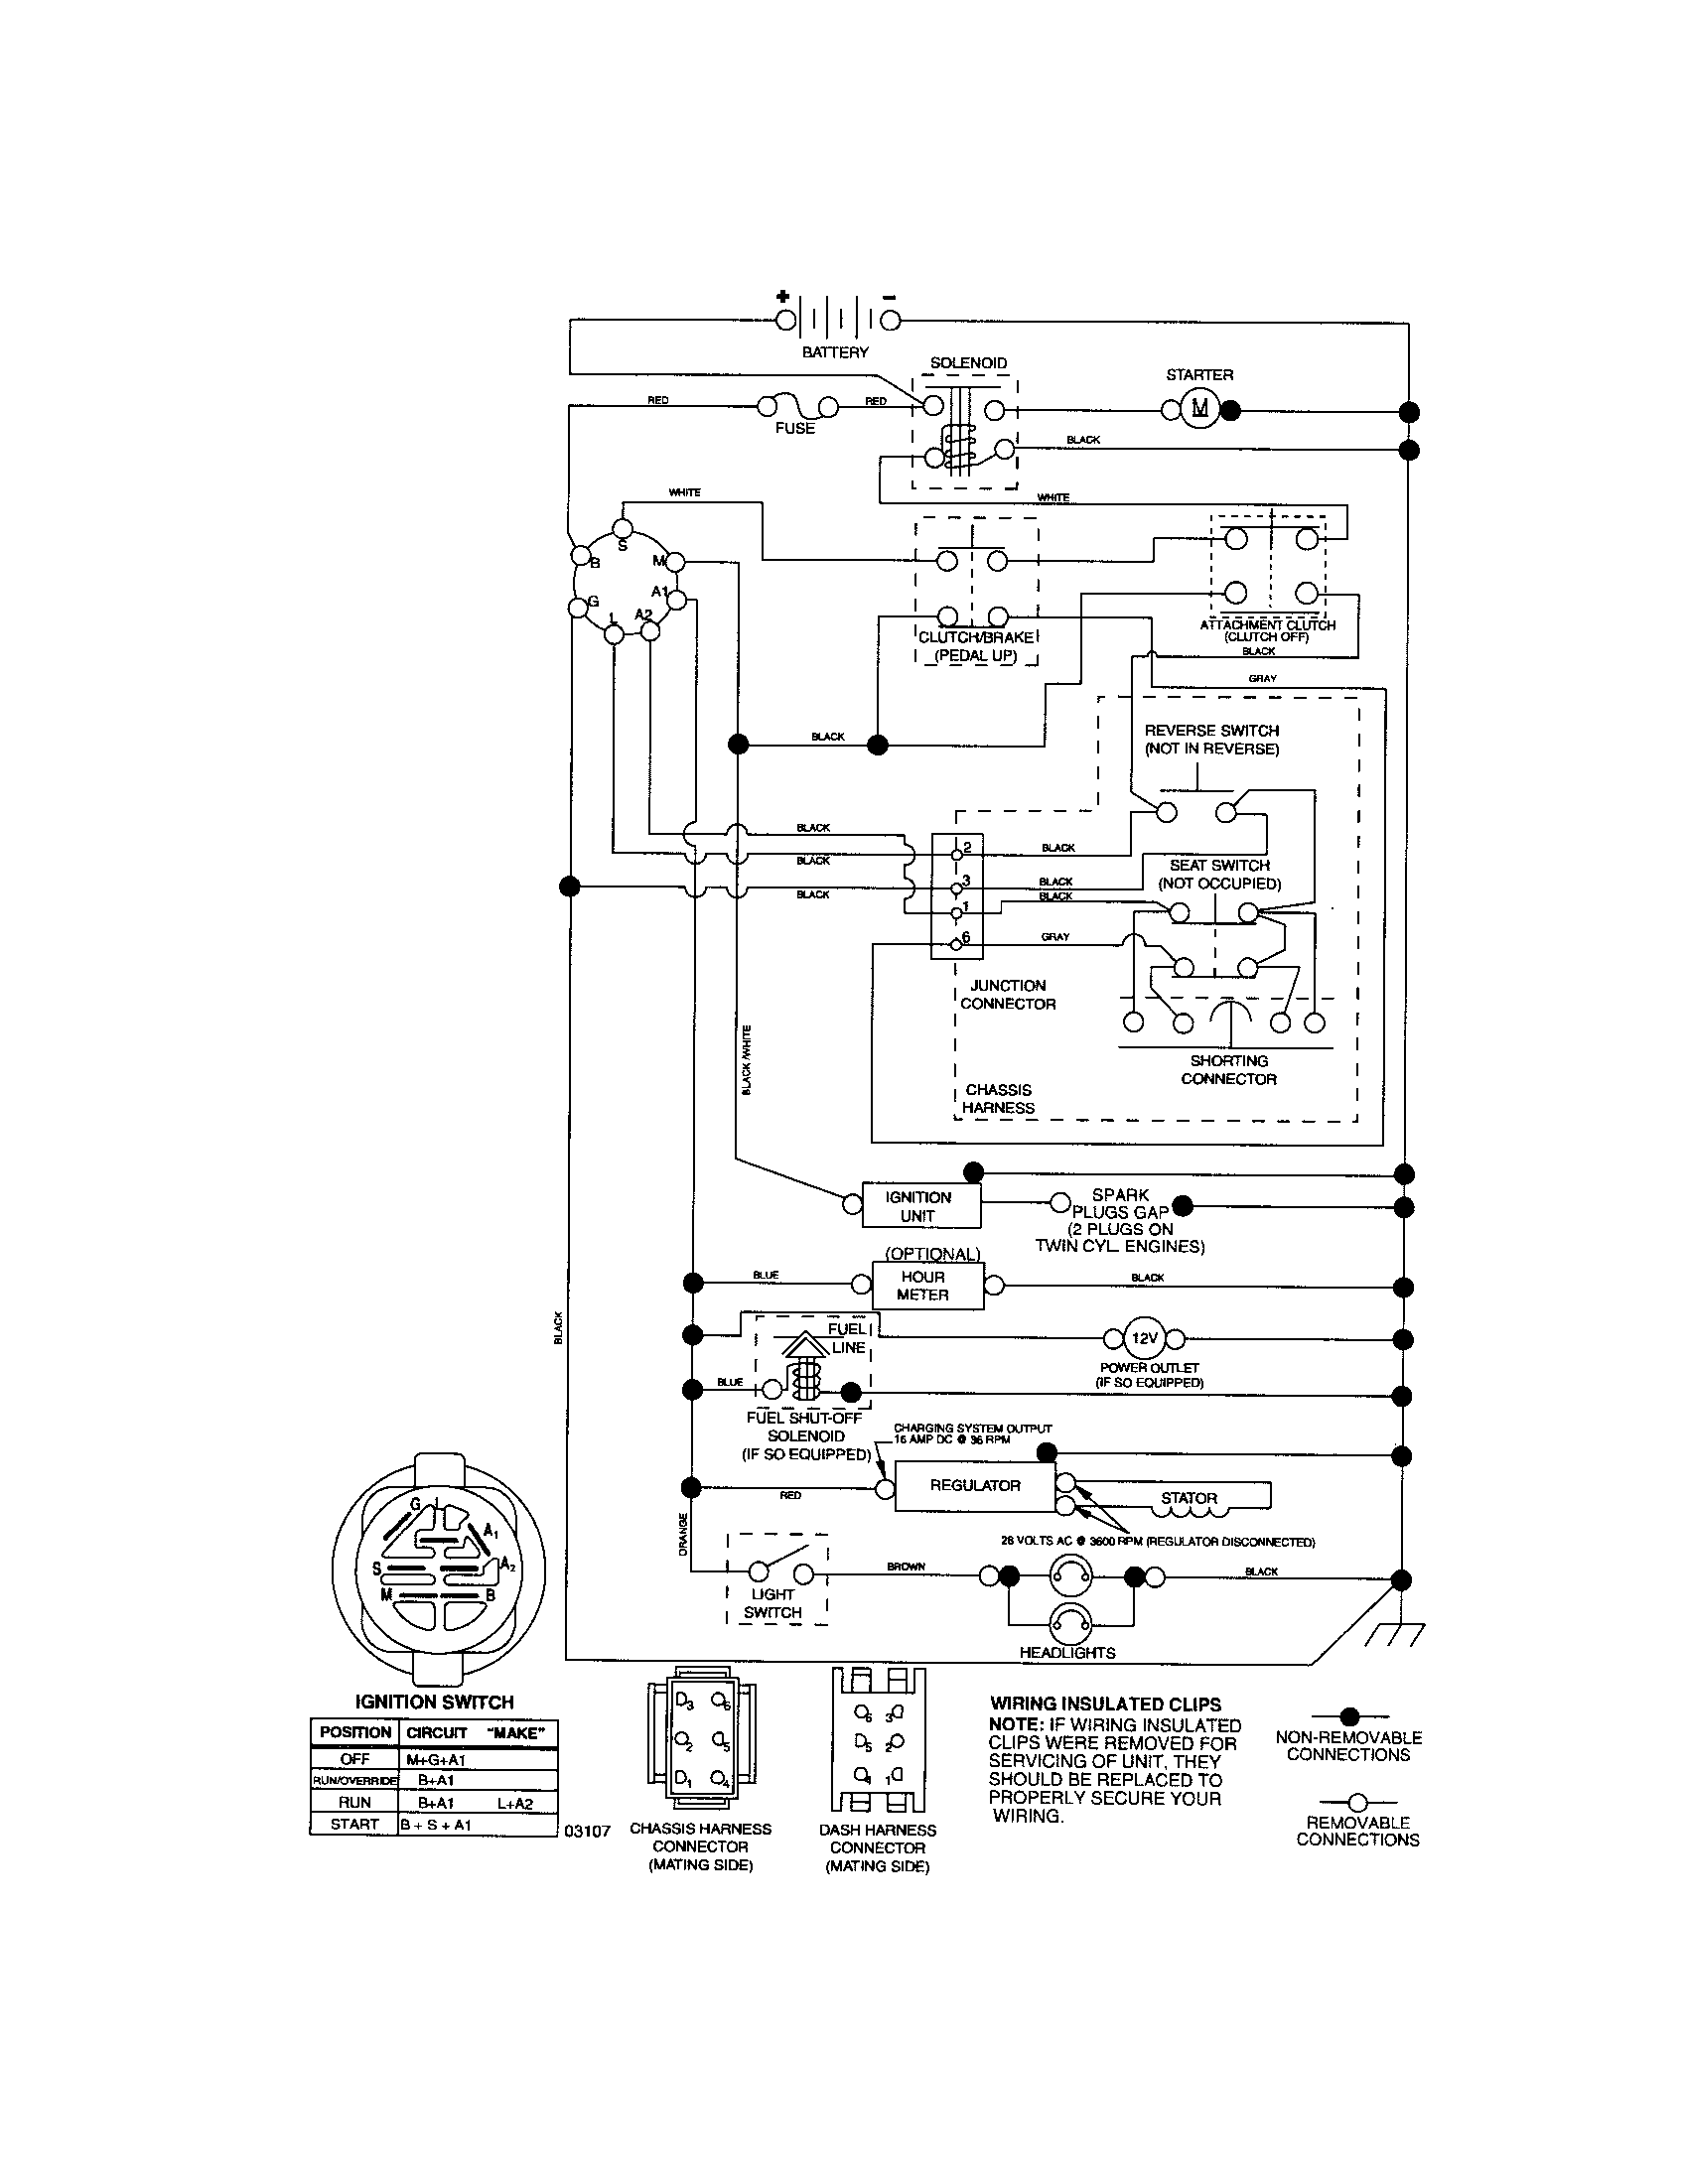 6af5f1447fd13c8443376822ddc1e105 craftsman riding mower electrical diagram wiring diagram briggs and stratton ignition coil wiring diagram at alyssarenee.co